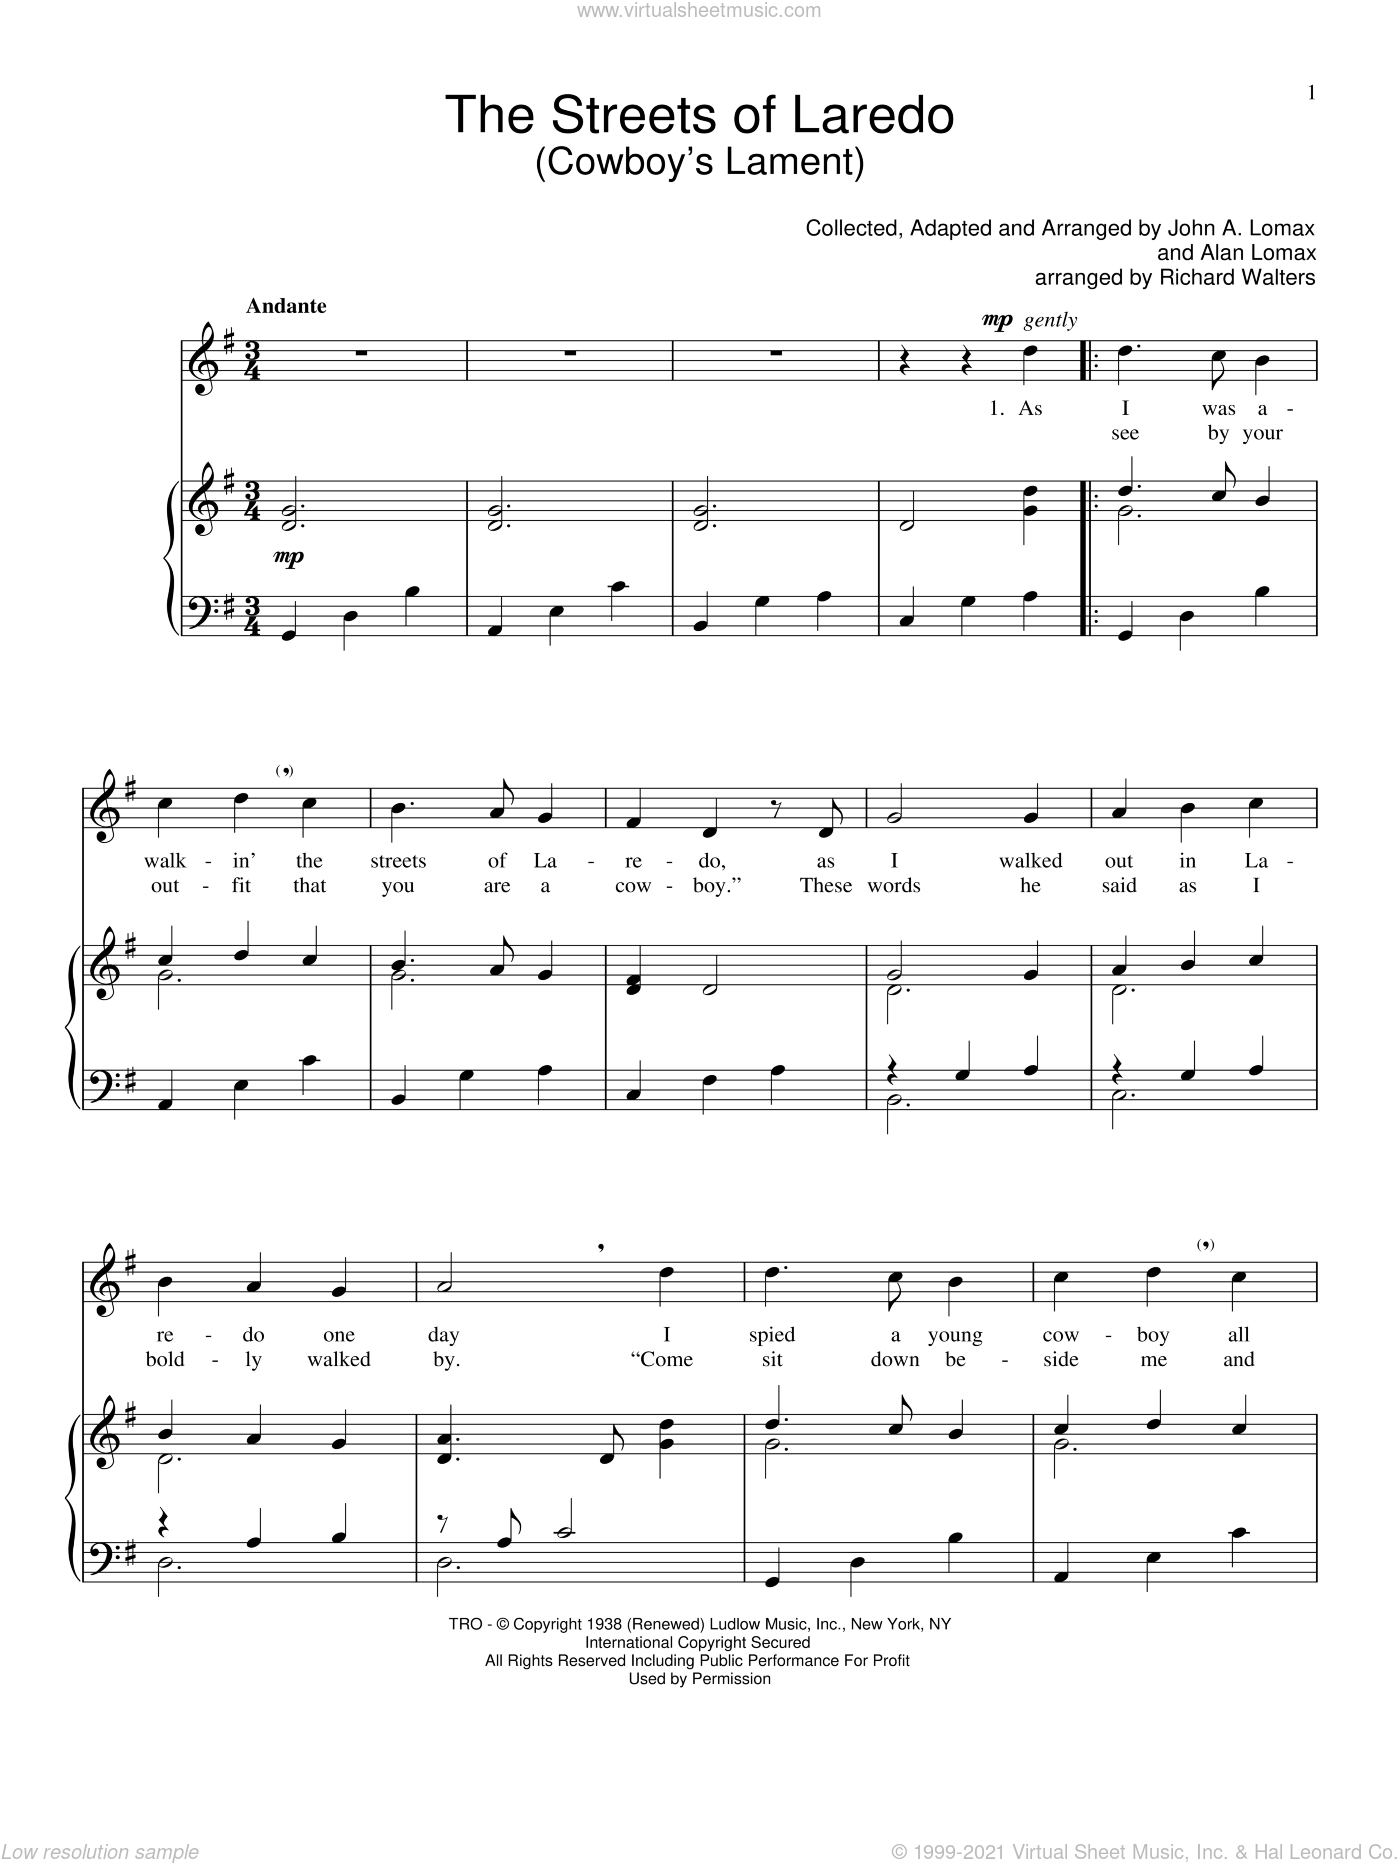 The Streets Of Laredo sheet music for voice and piano by John A. Lomax